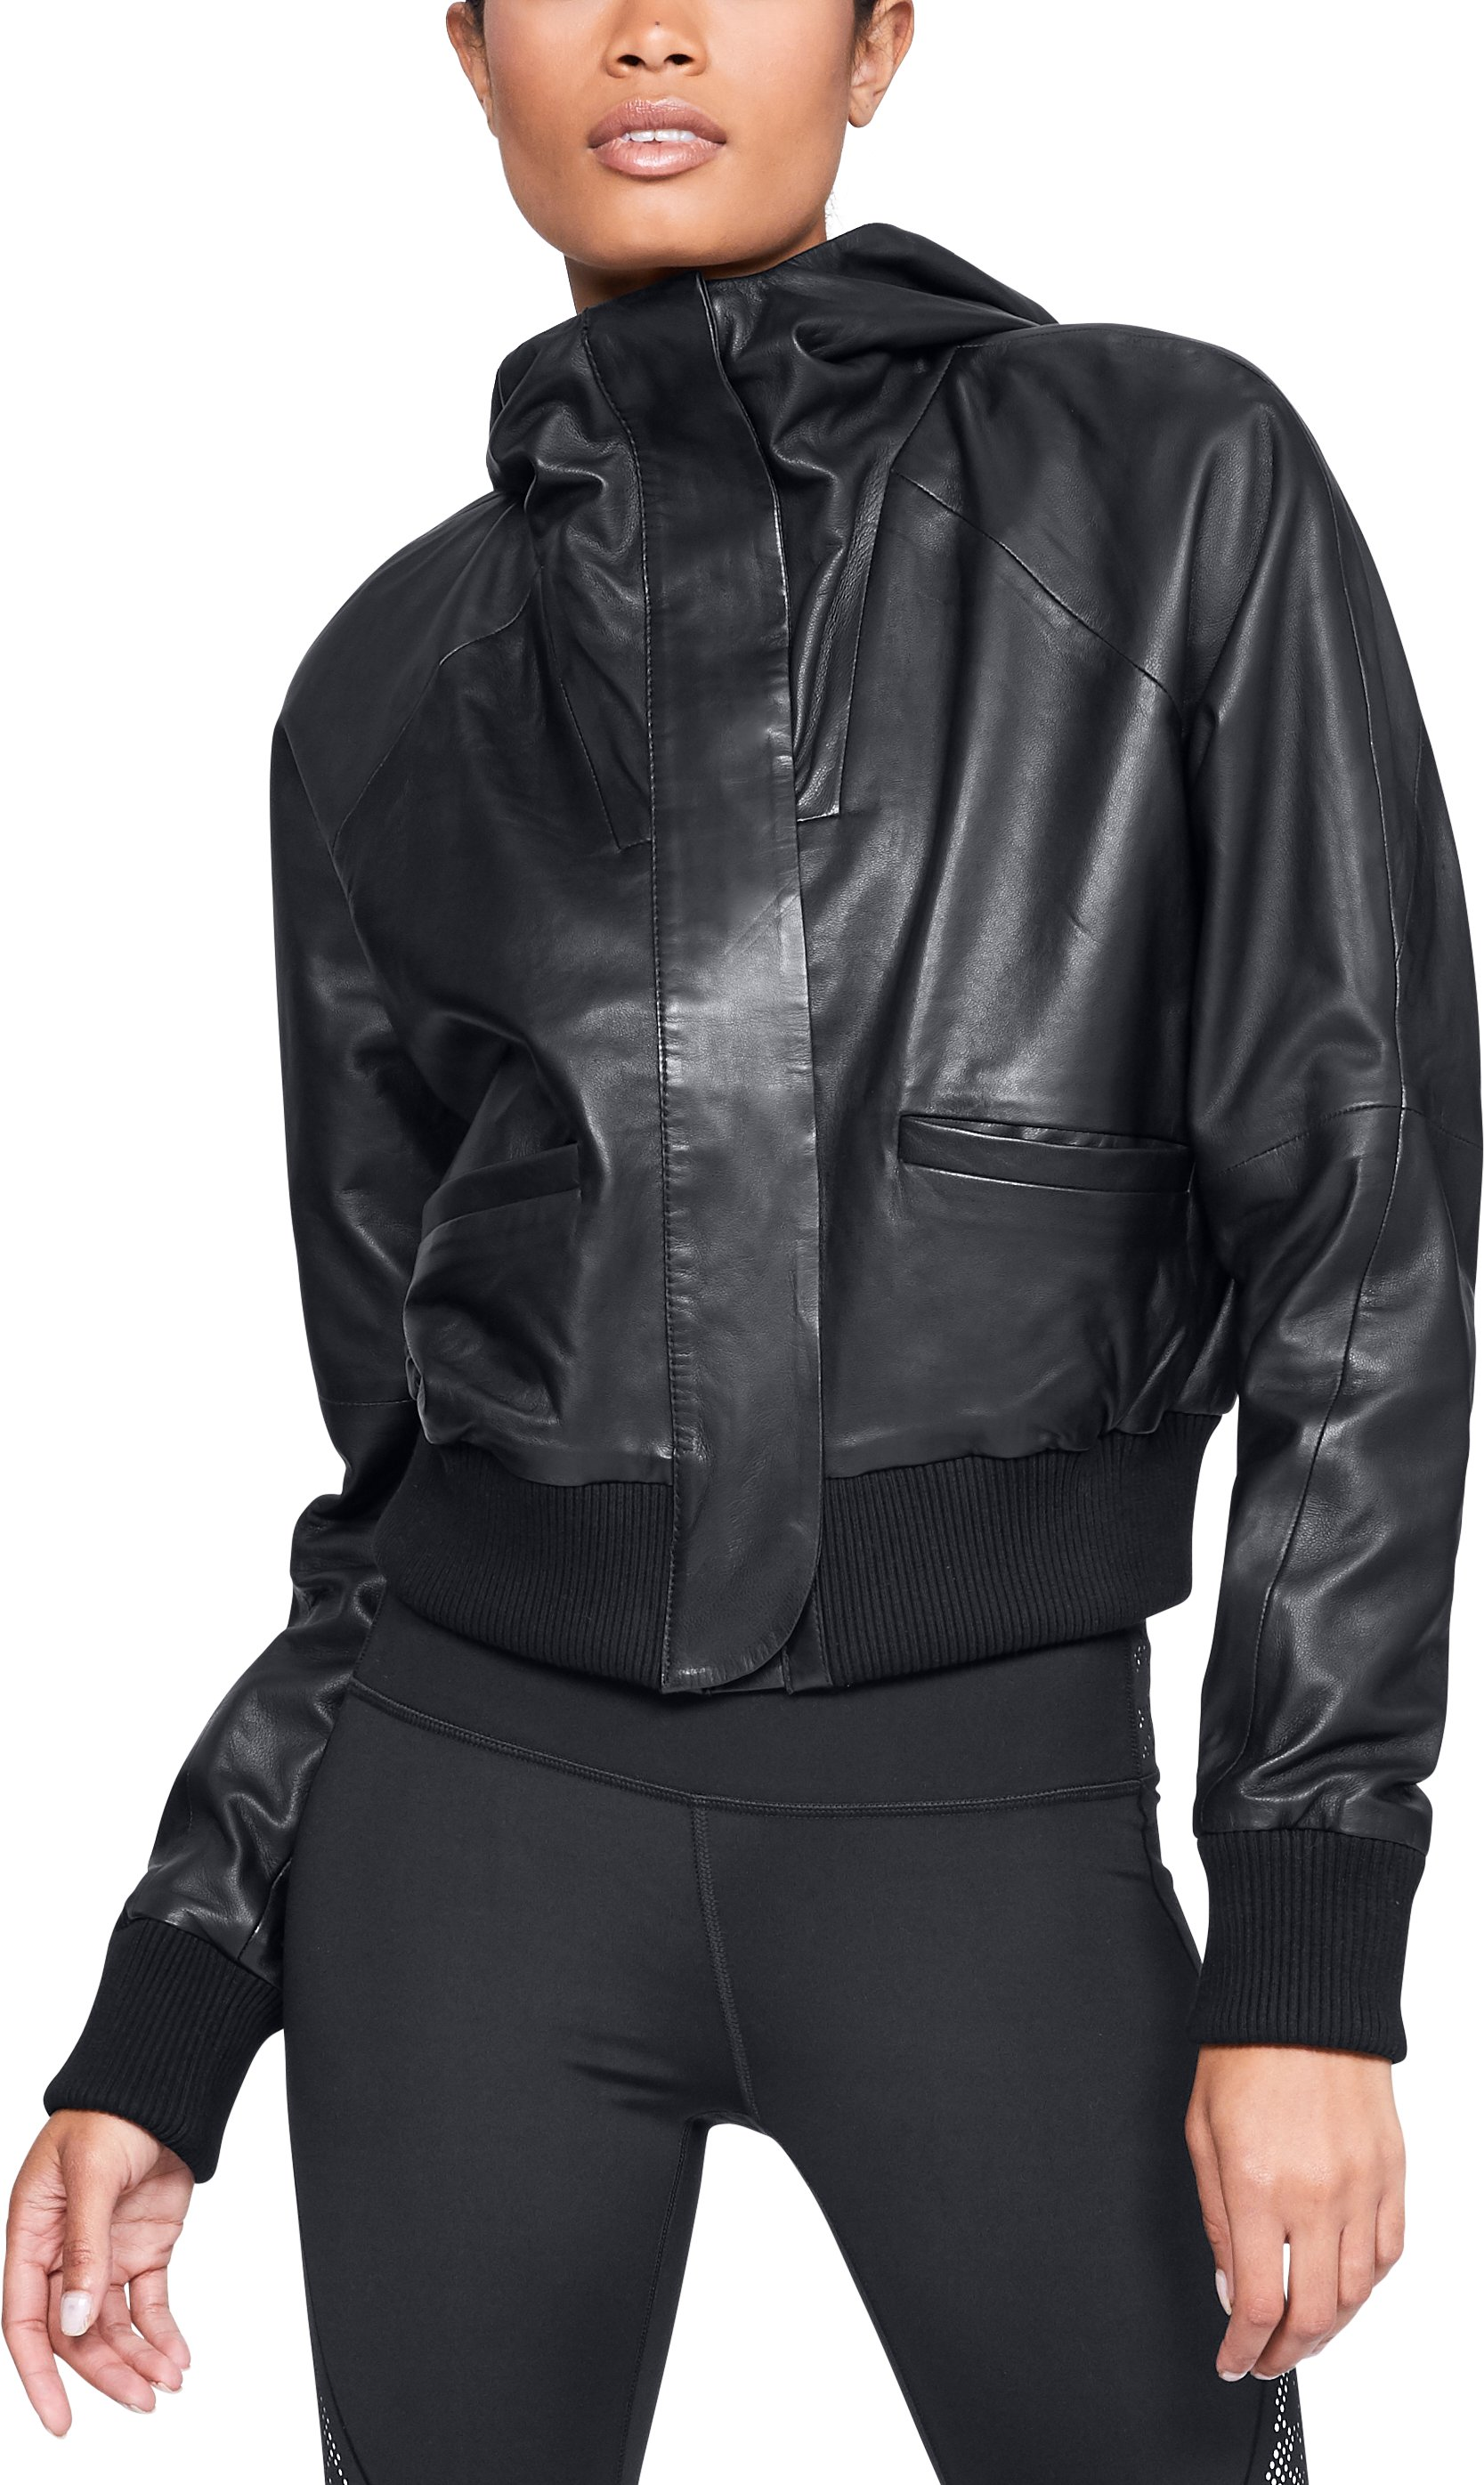 Women's UA Misty Copeland Signature Leather Bomber Jacket, Black